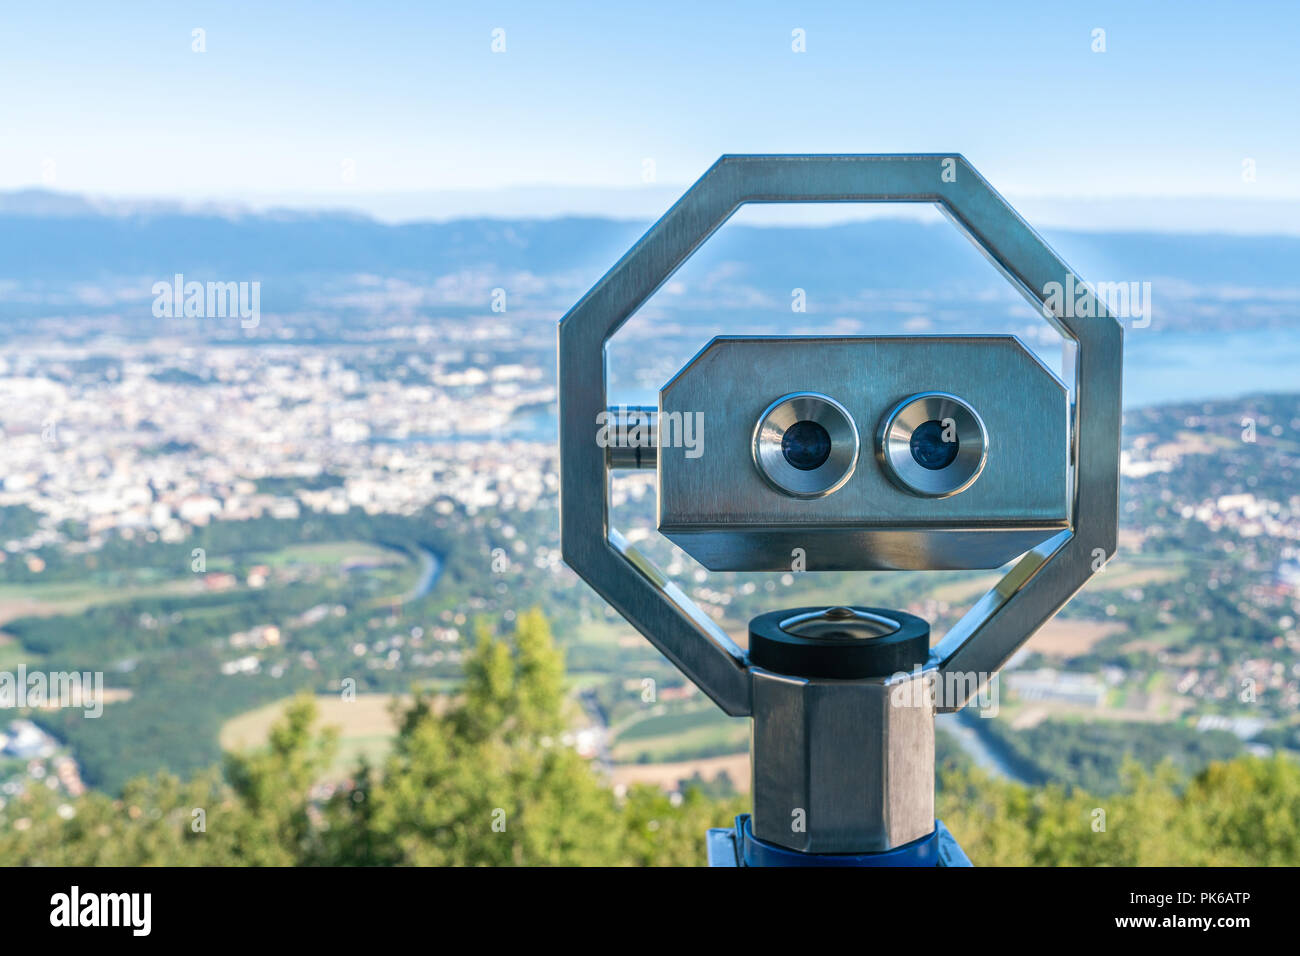 Coin operated binoculars on Mont Saleve located in France over looking city panorama of Geneva, Switzerland. - Stock Image